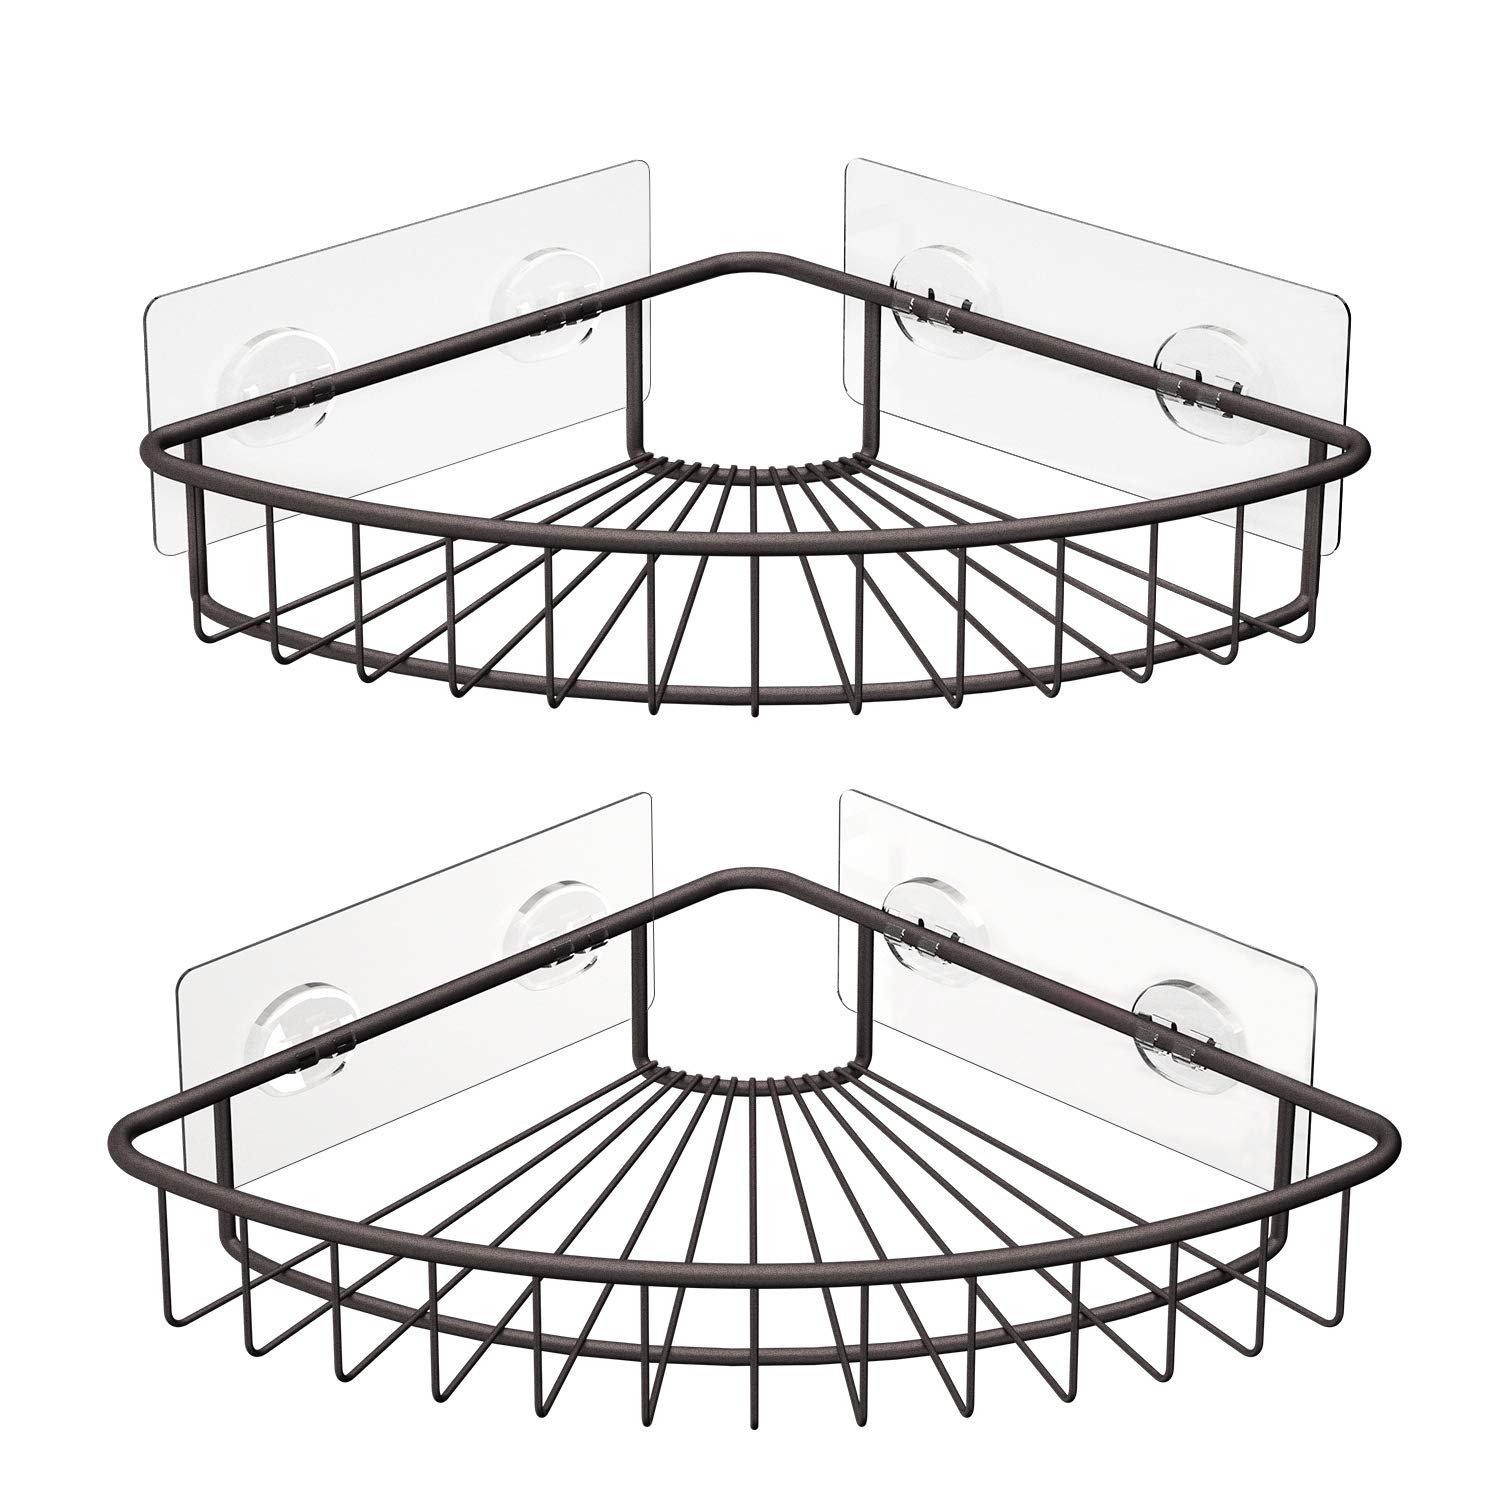 SMARTAKE 2-Pack Corner Shower Caddy, SUS304 Stainless Steel, Wall Mounted Bathroom Shelf with Adhesive, Storage Organizer for Toilet, Dorm and Kitchen (Bronze) by SMARTAKE